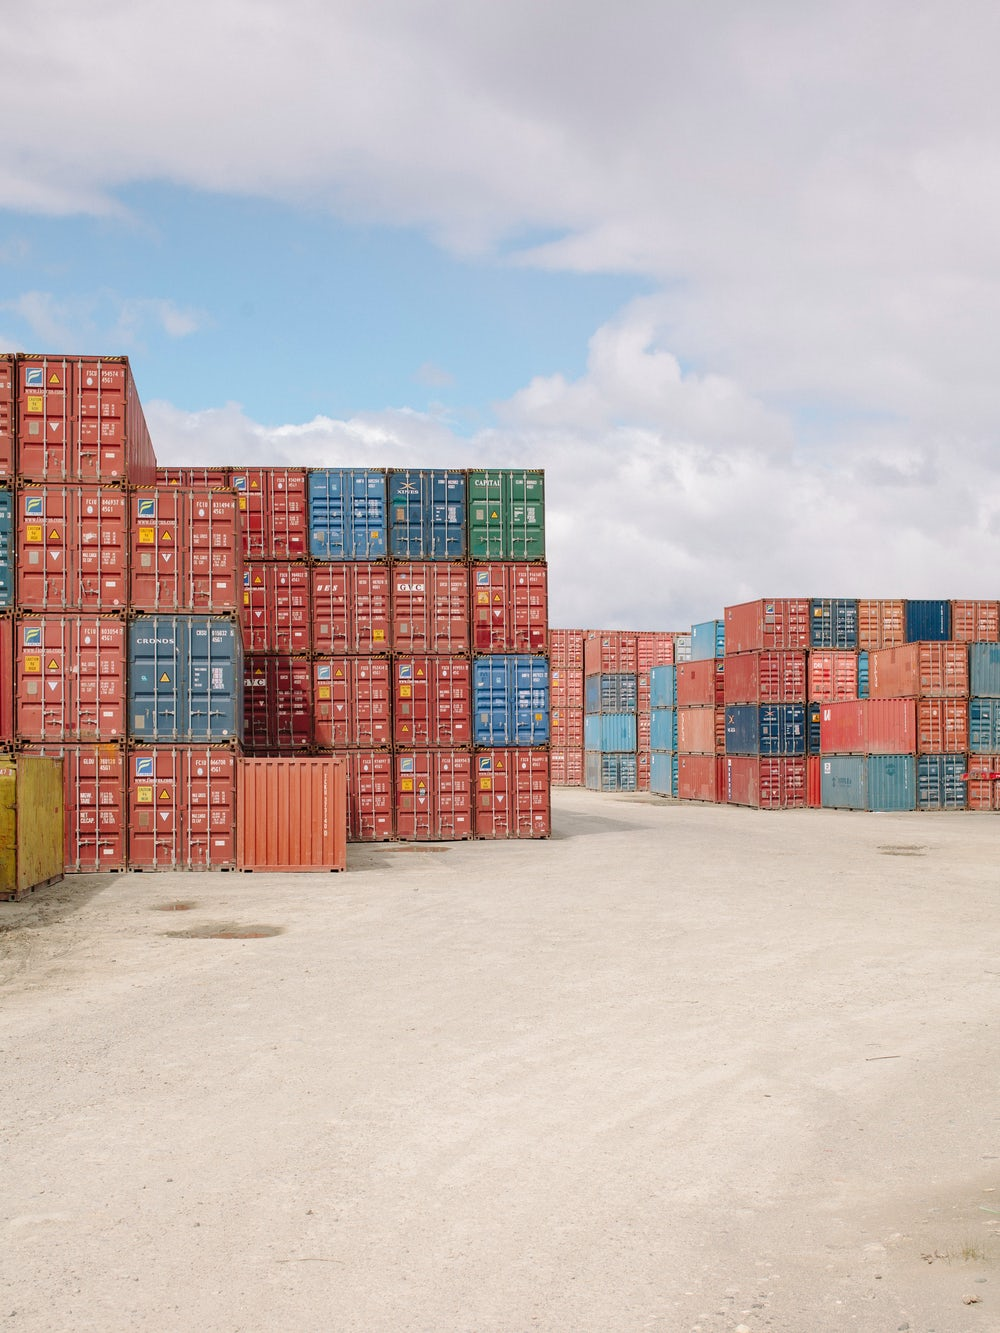 A hub for shipping containers holding domestic and international imports.